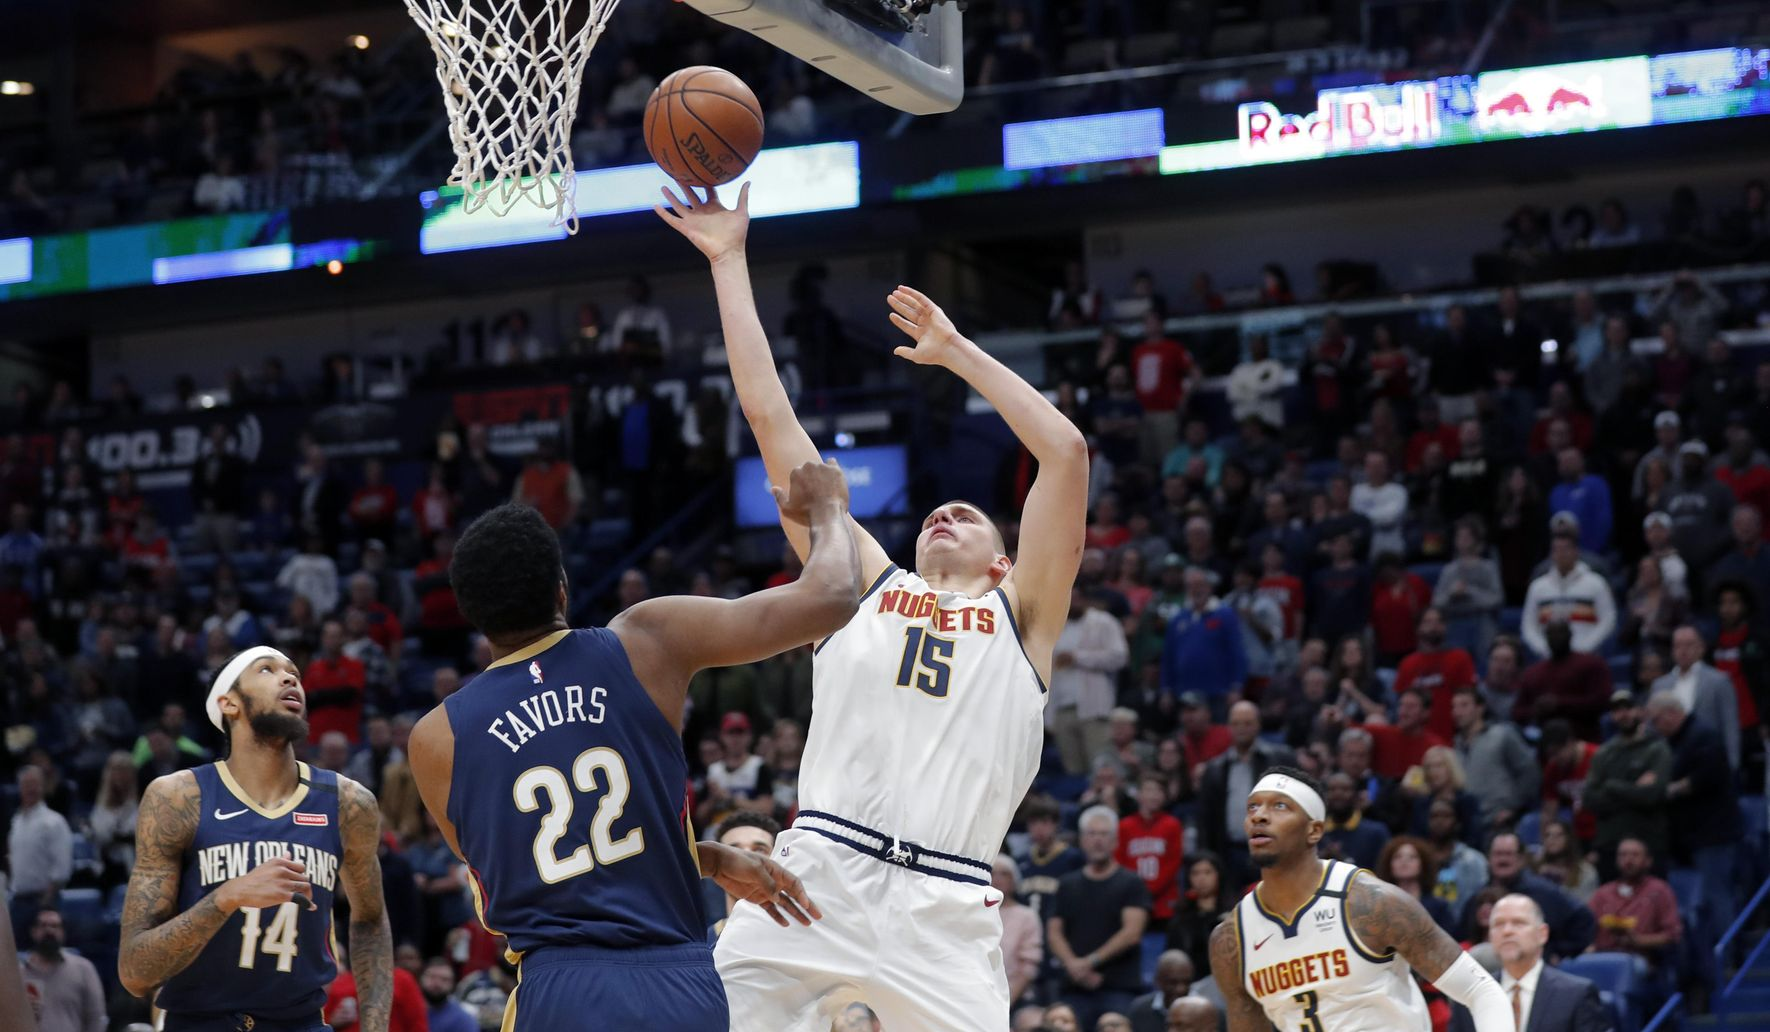 Nuggets_pelicans_basketball_42803_c0-187-4487-2803_s1770x1032